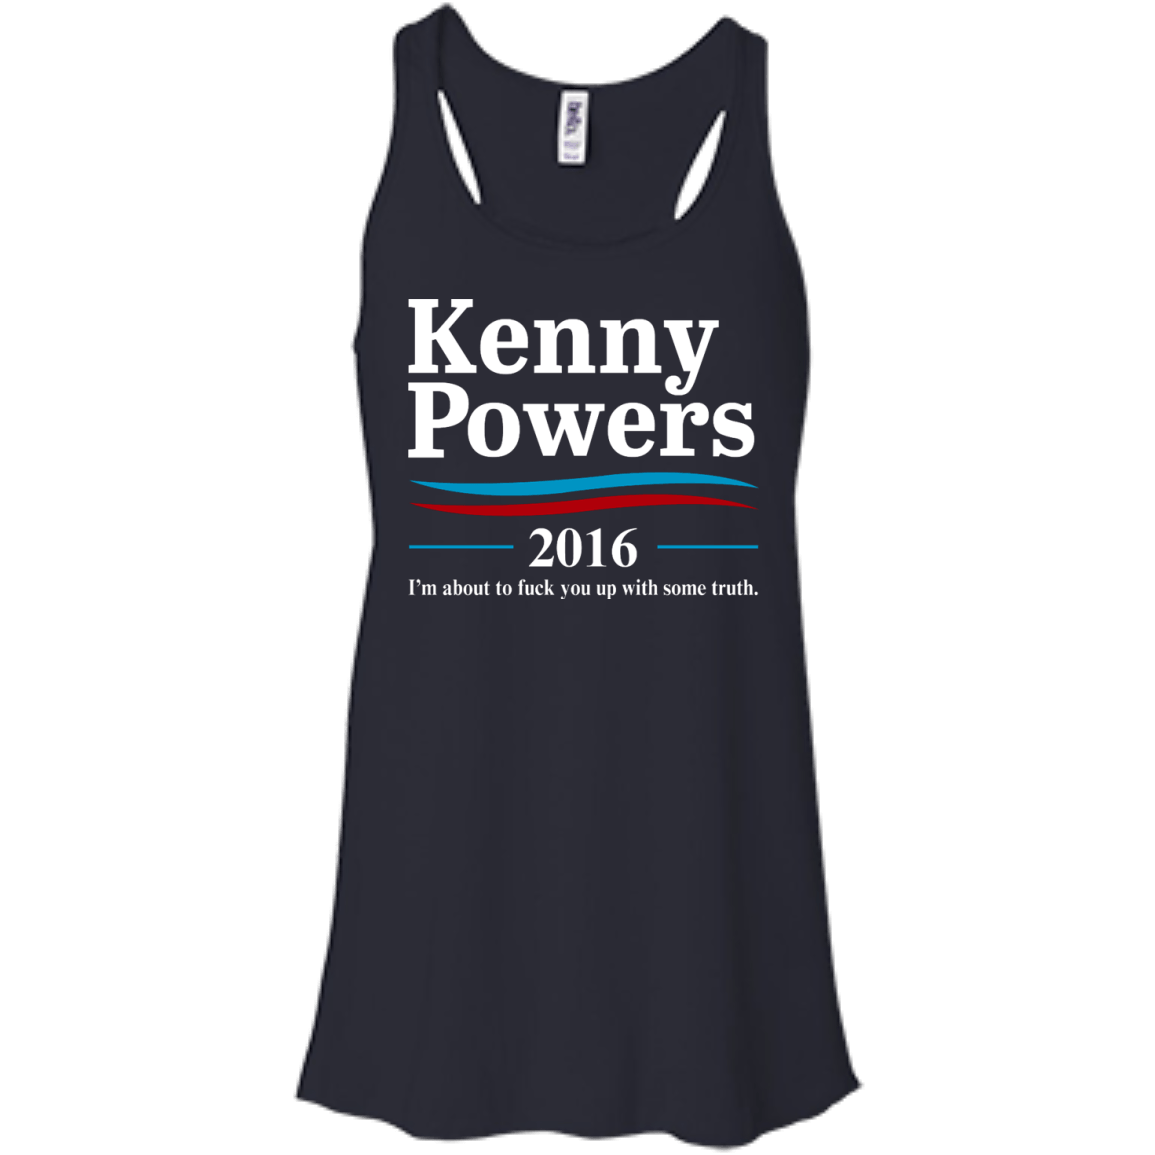 Kenny Powers for president 2016 t shirt & hoodies, tank top